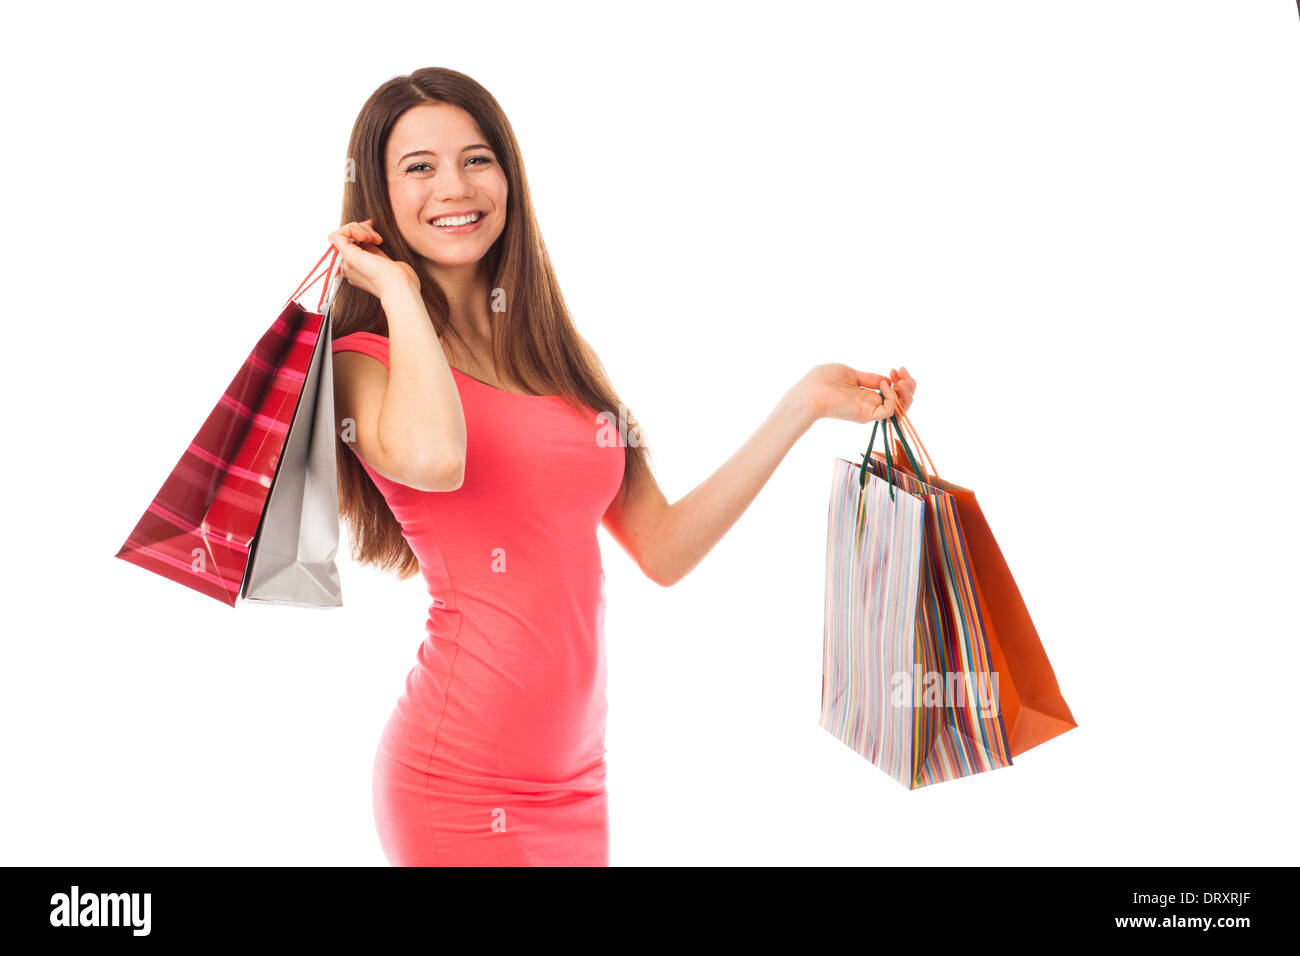 Portrait of a young woman holding shopping bags, isolated on white - Stock Image